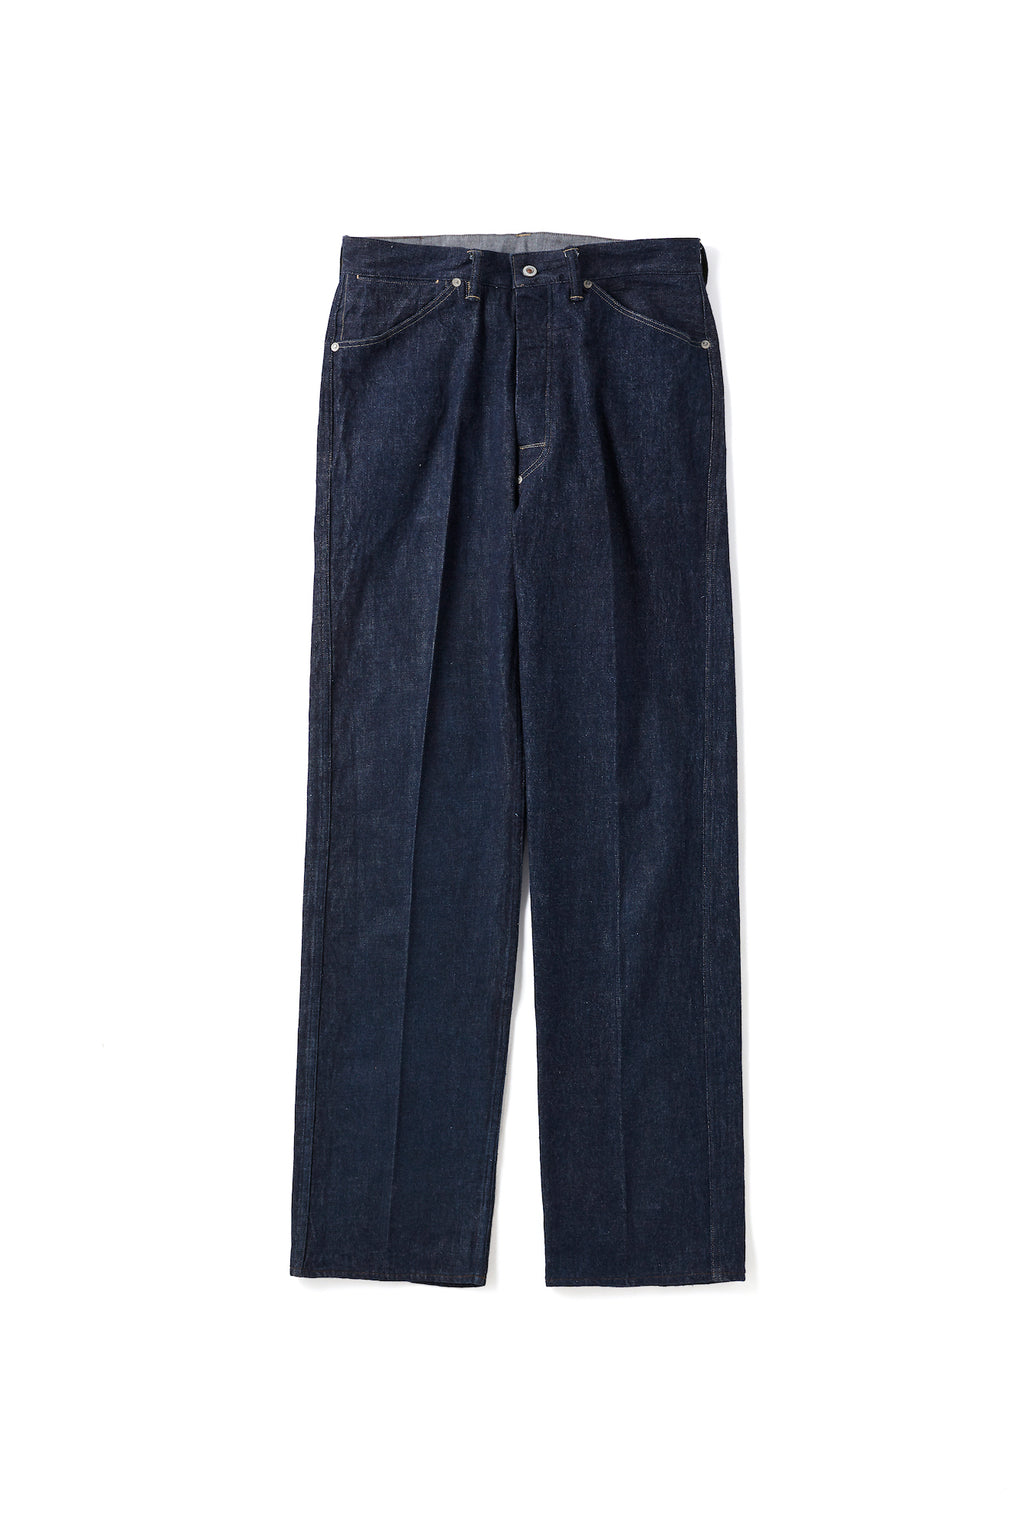 "PLEATED JEAN TROUSER""946"" - 201OJ-PT04"